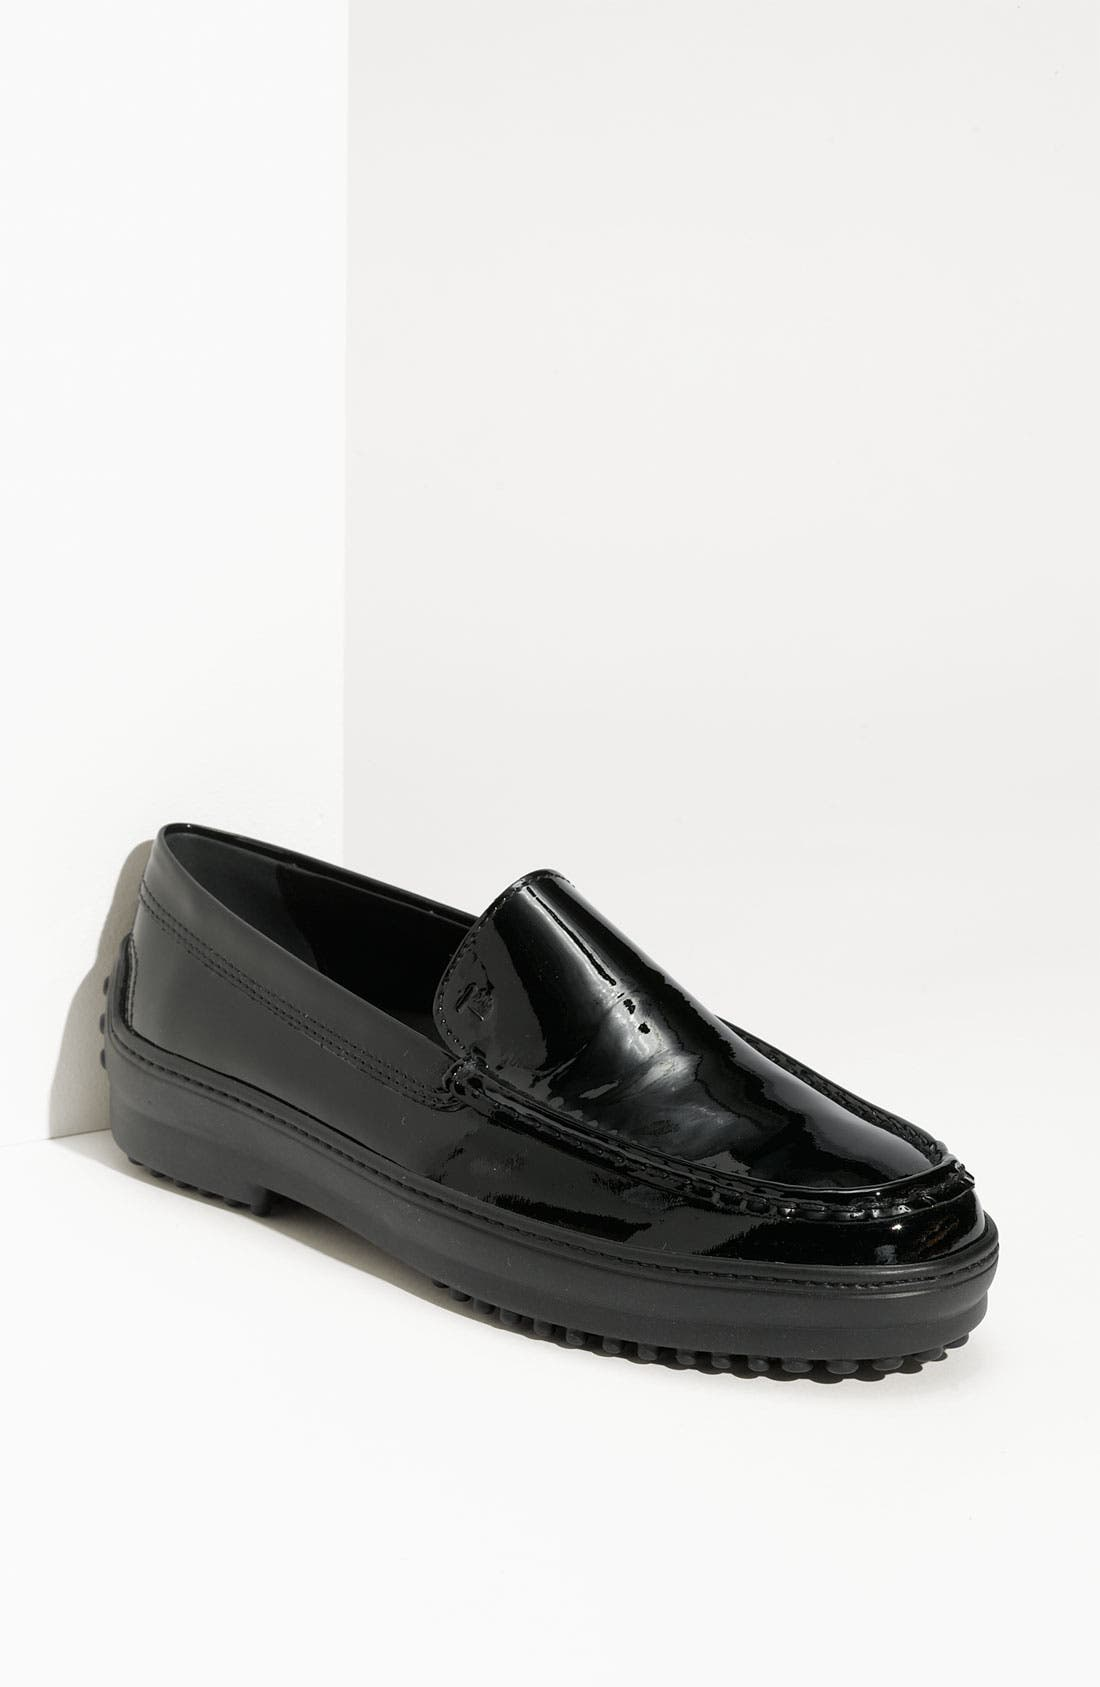 Alternate Image 1 Selected - Tod's 'Winter Gommini' Driving Moccasin